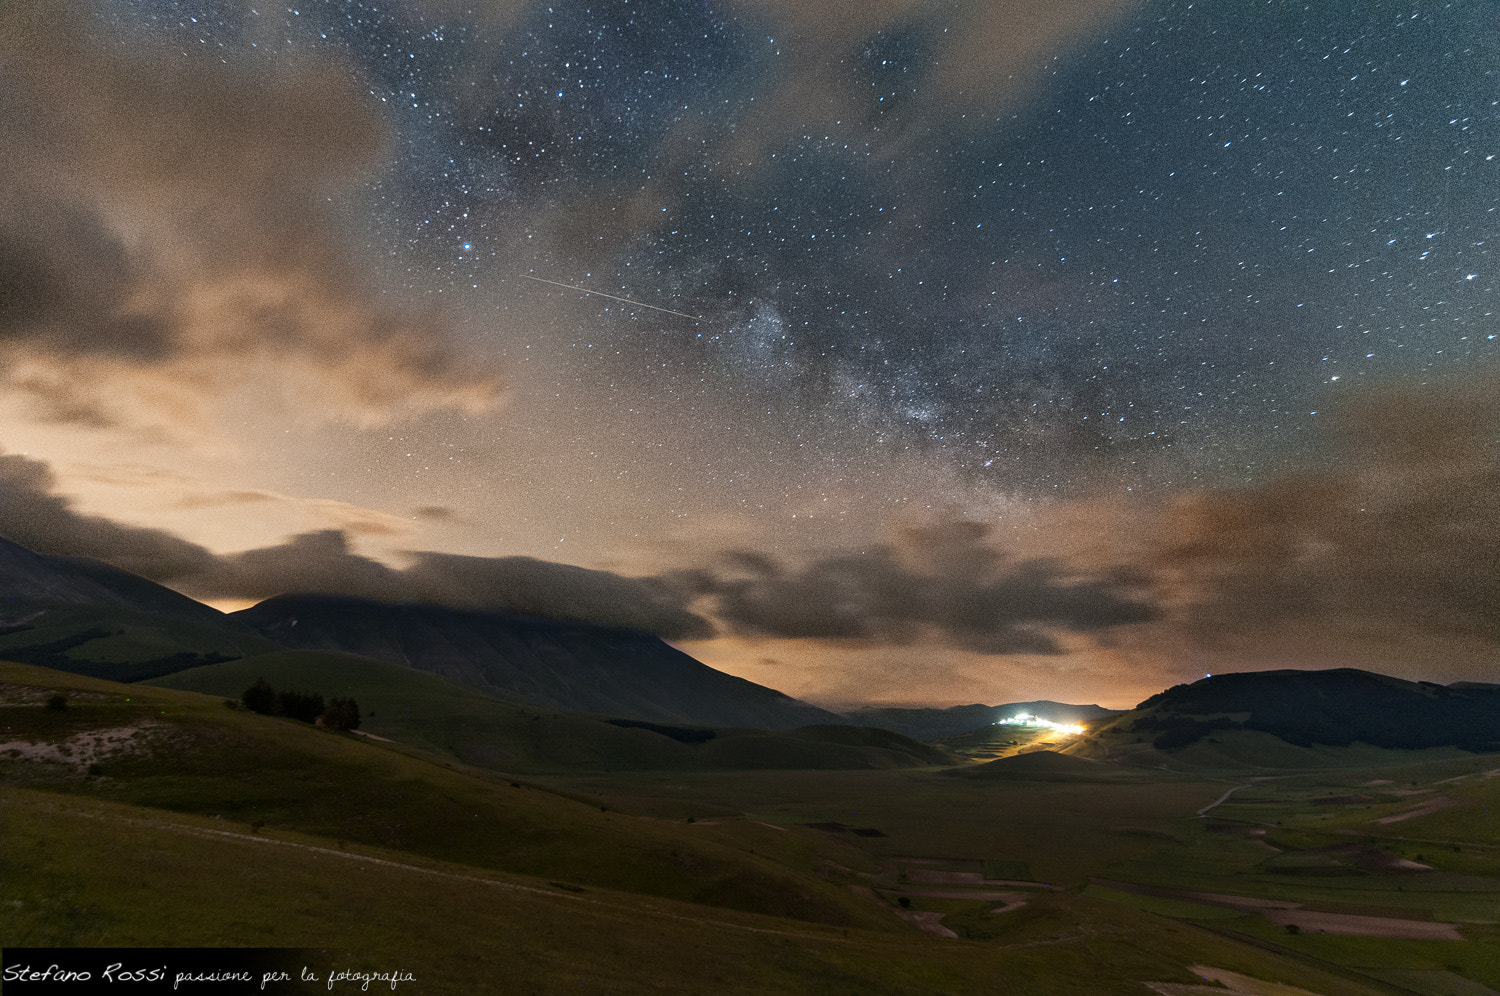 Photograph Milky Way over Castelluccio by Stefano Rossi on 500px